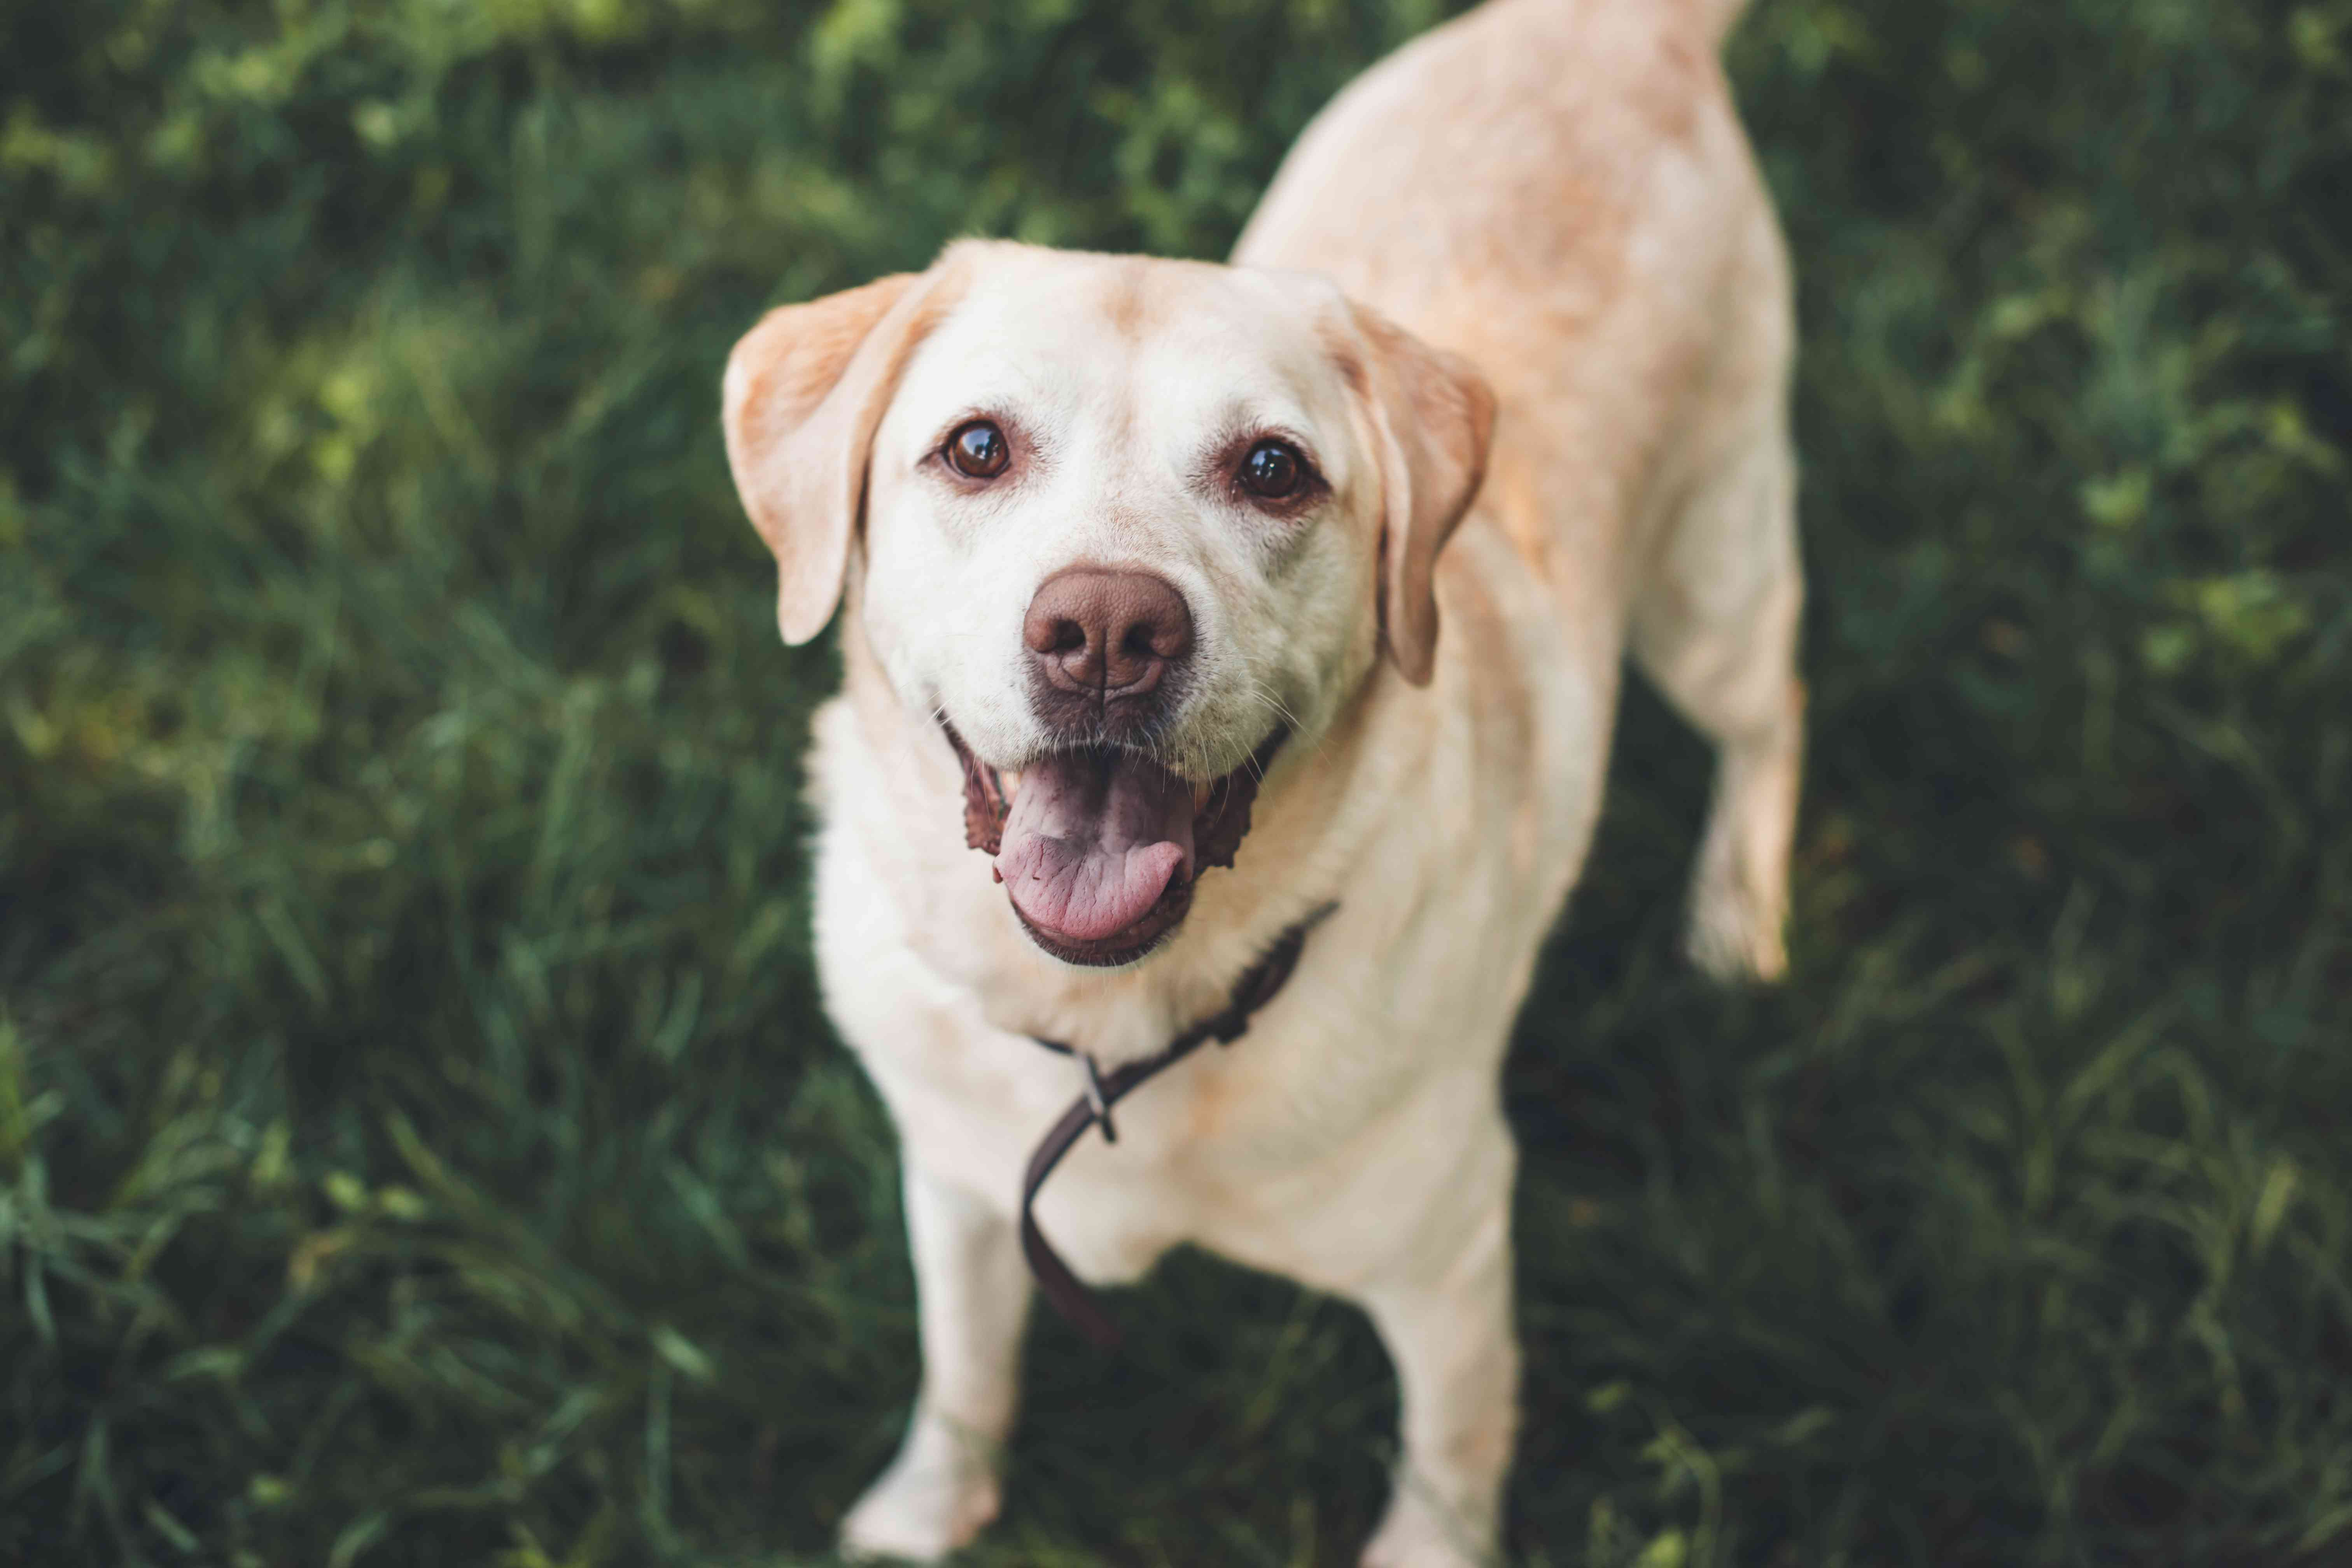 Upper view photo of a labrador looking up at camera waiting for something in a park on grass